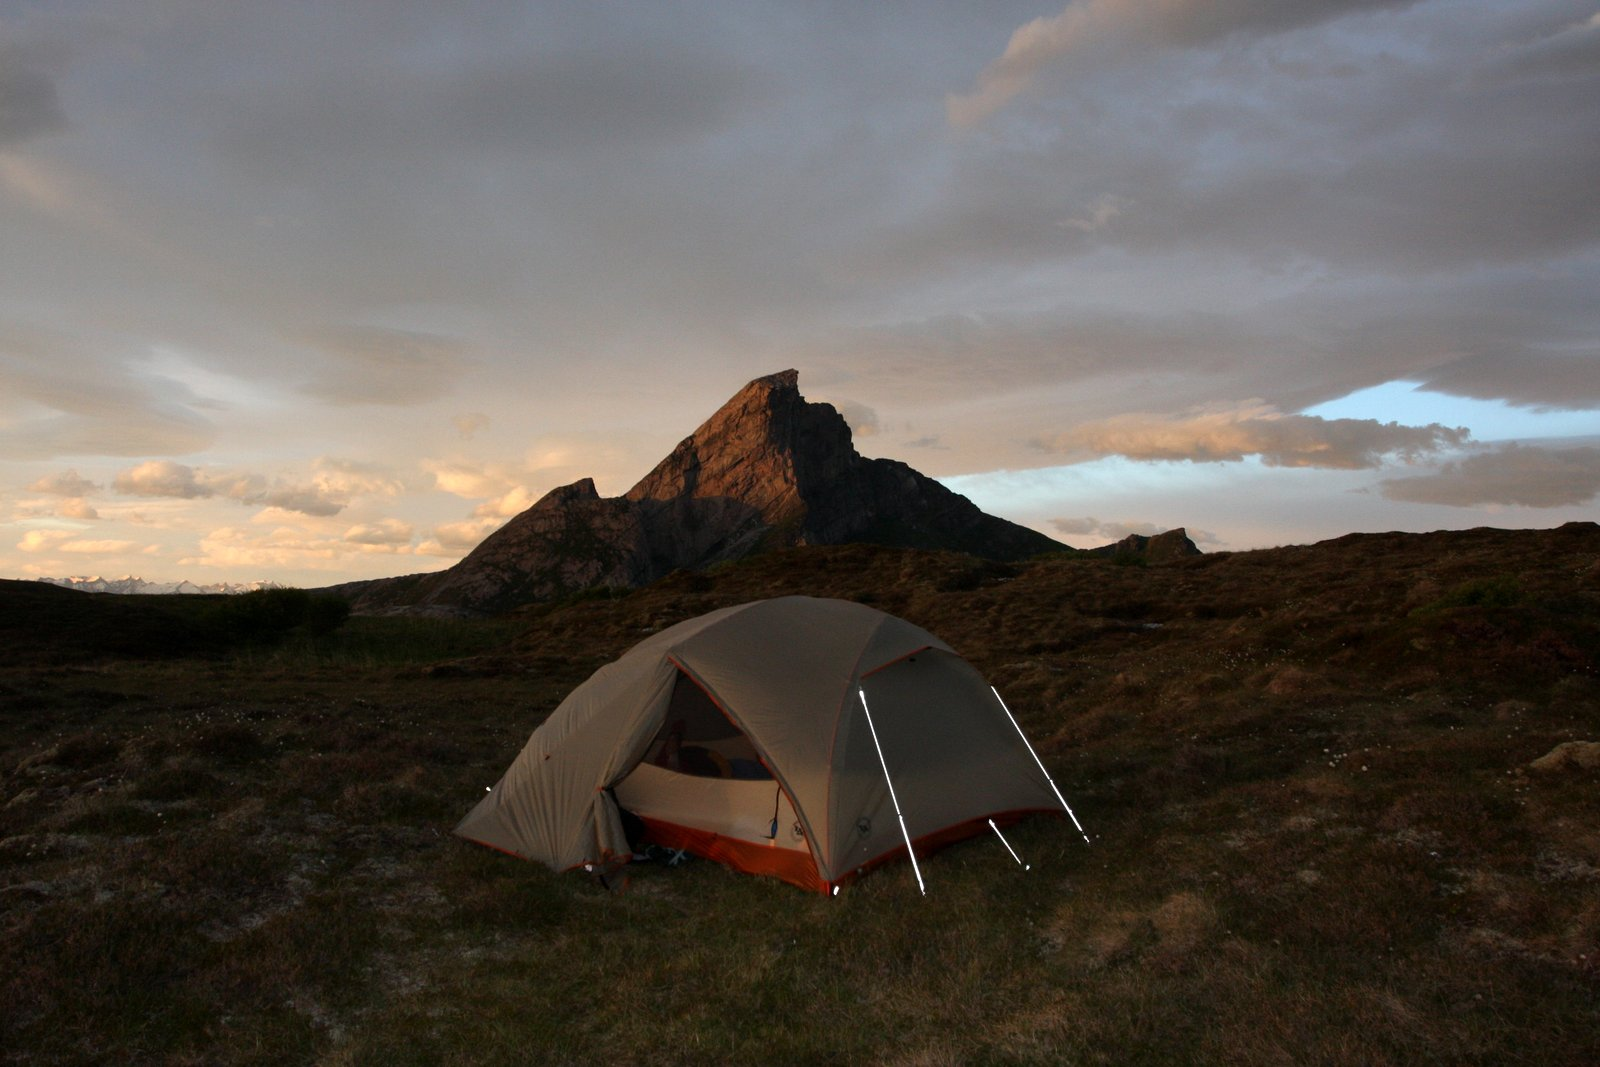 During the summer months, the sun hardly ever sets. Chen snapped this photo on a camping outing at 2 a.m.